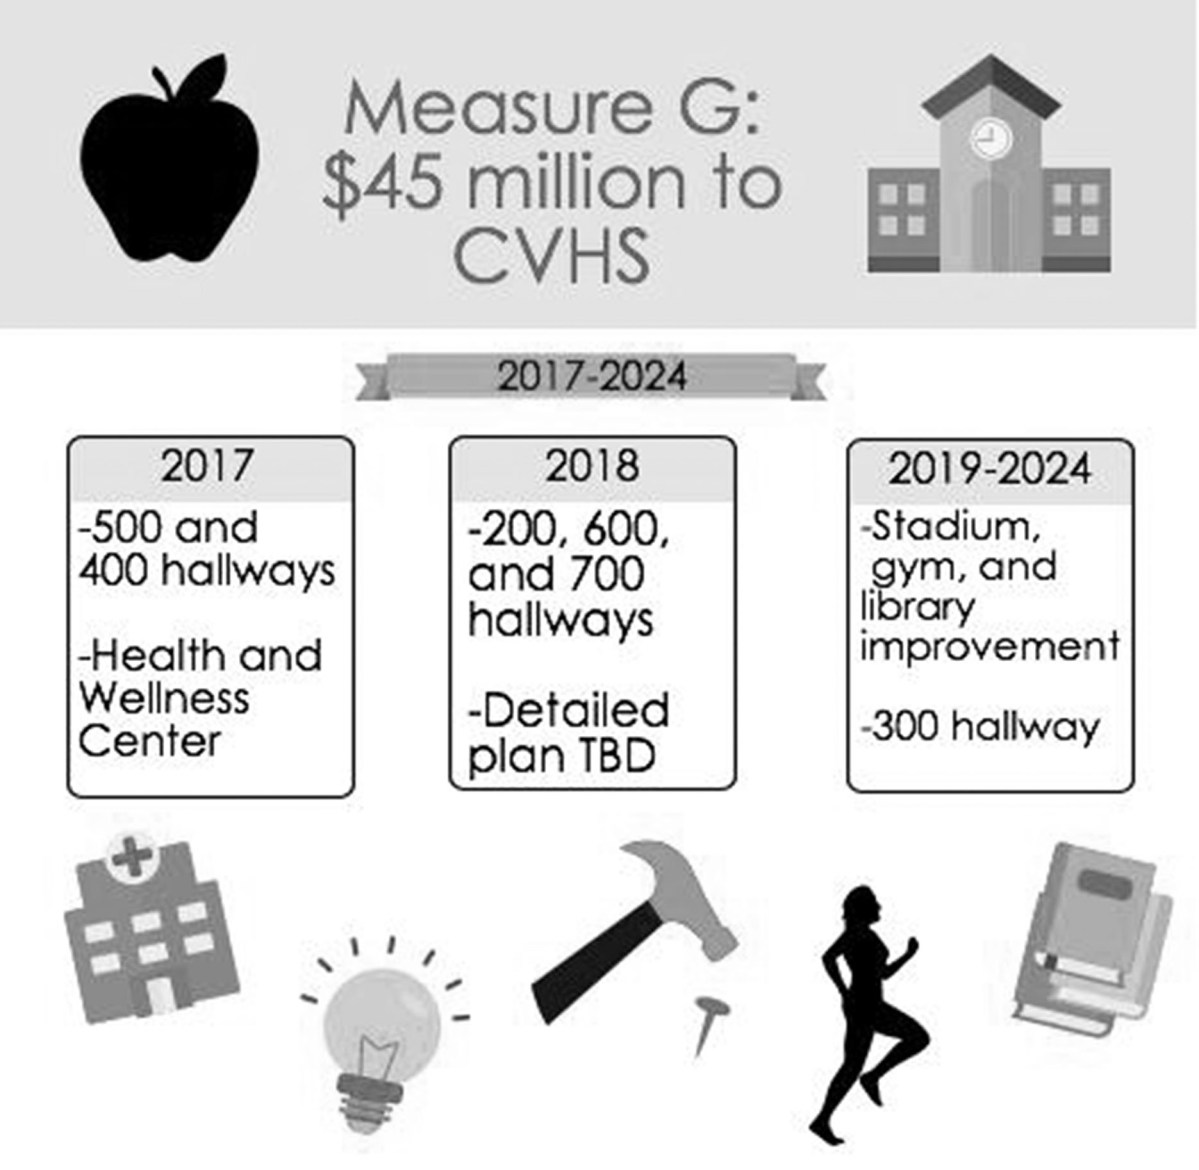 Measure G will lead to much need but inconvenient renovations